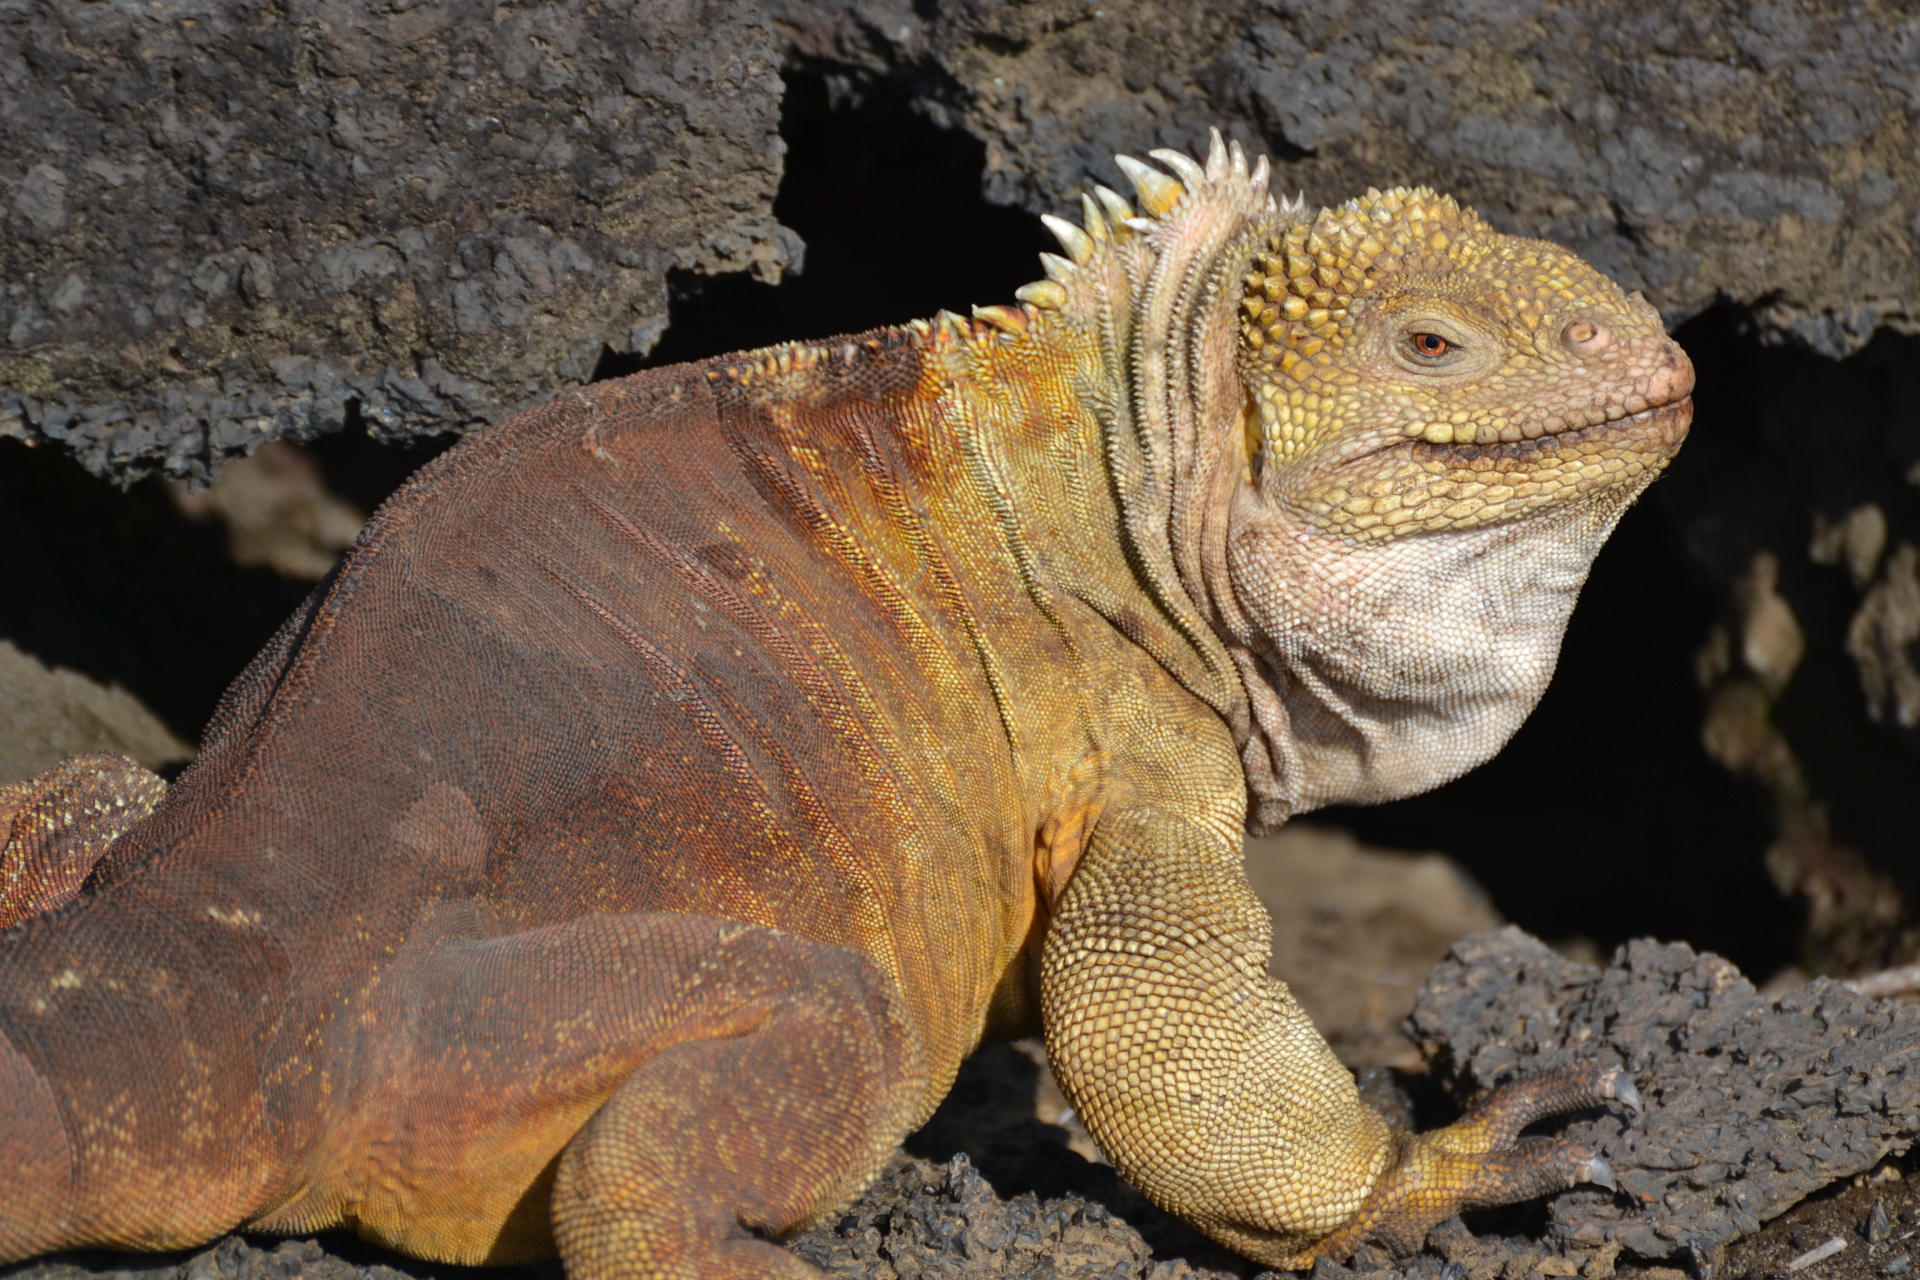 The 2015 Expedition to Wolf Volcano: A Return to Galapagos